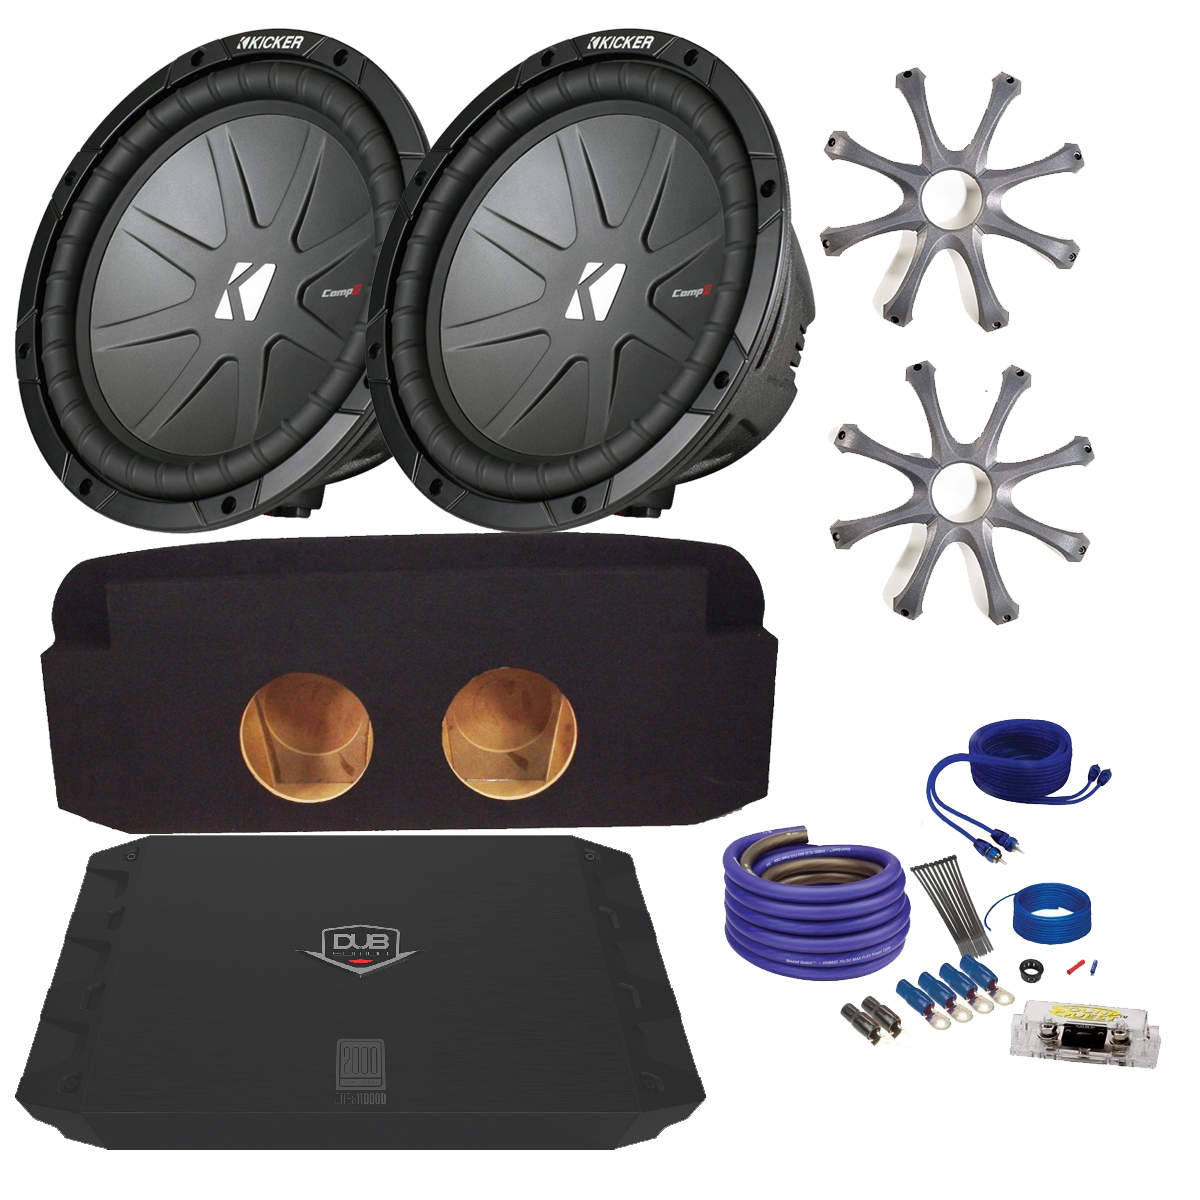 "Kicker Cadillac Escalade CWR102 10"" Truck Bundle with Crunch PX2000.1D 2000 Watt Max Mono Amp, Enclosure, Wire Kit"